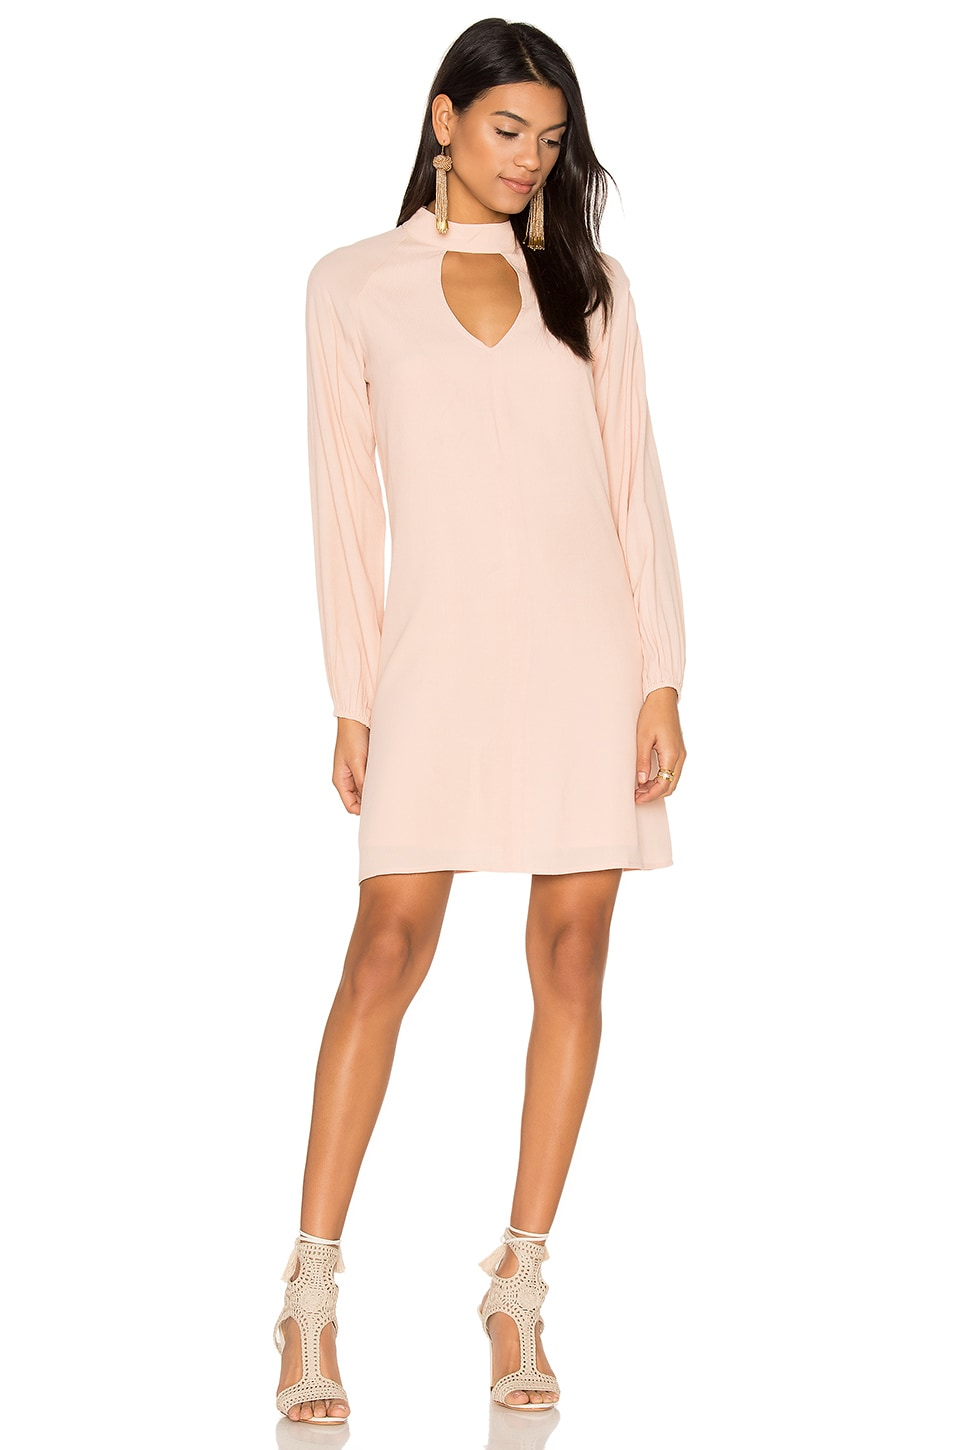 BLAQUE LABEL Keyhole Dress in Blush